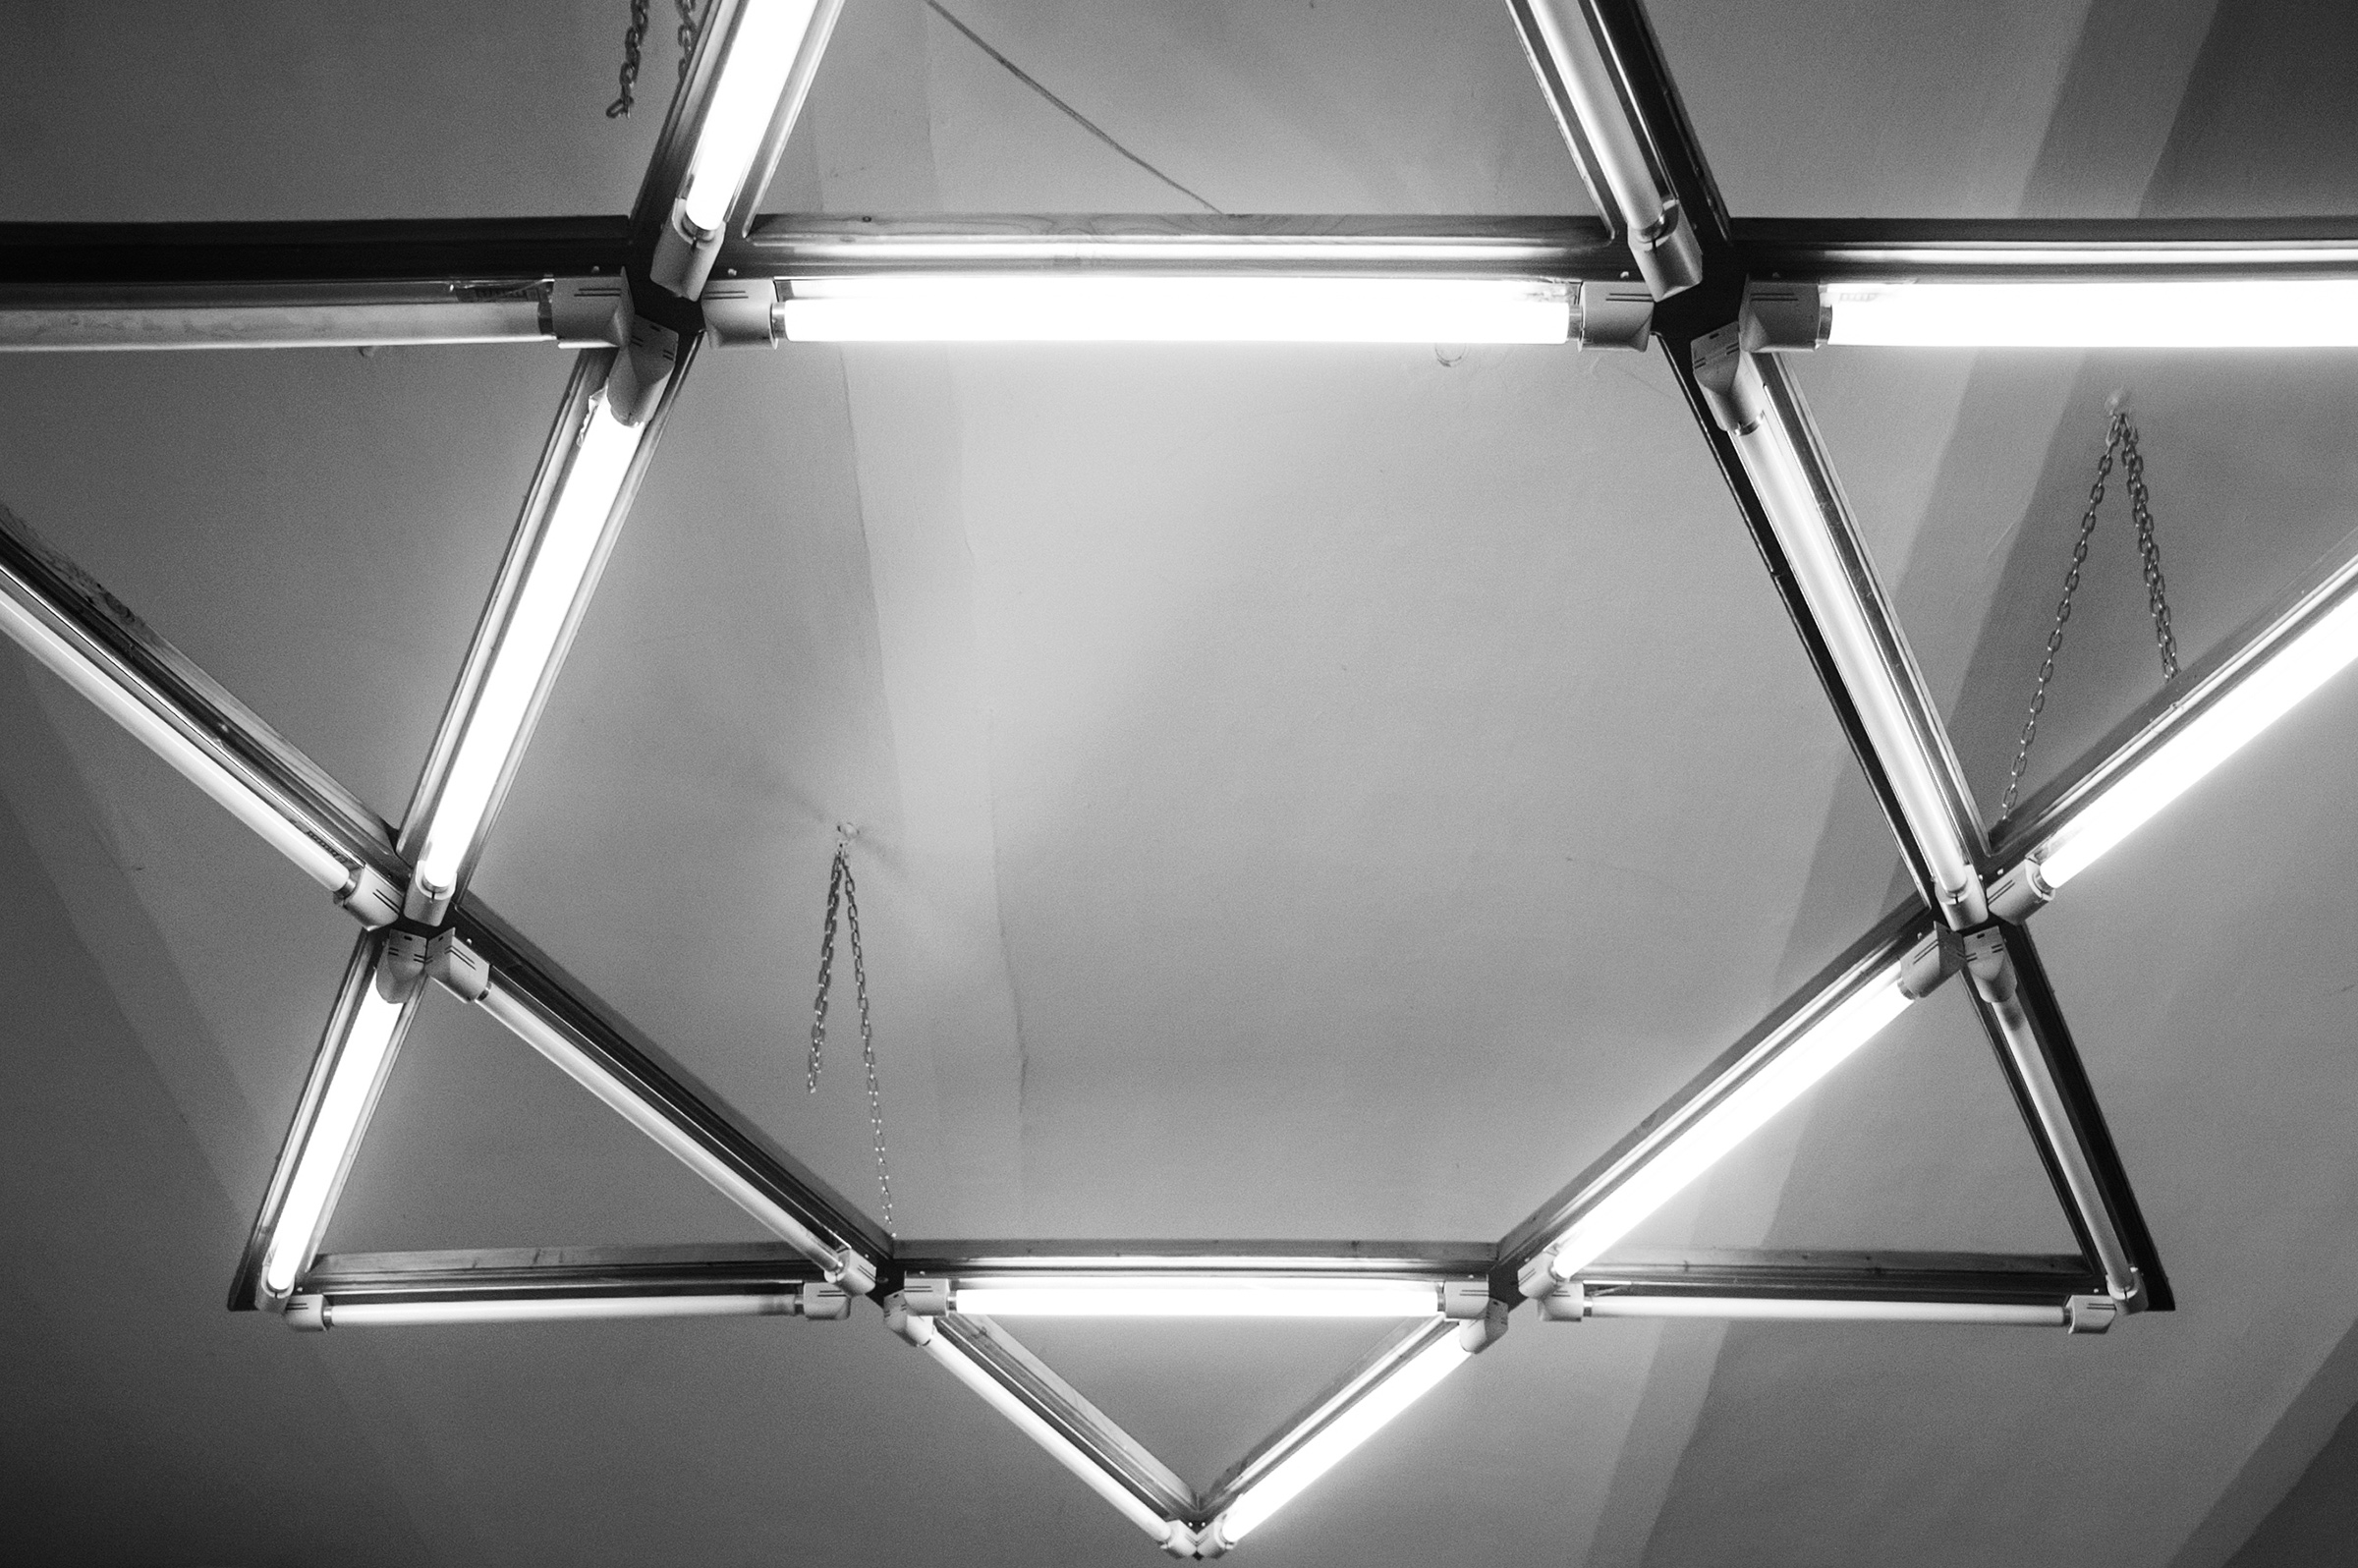 The Star of David-shaped flourescent lights flicker over the small meeting room inside the Jewish Community Center in Oradea, Romania on January 12, 2015. (Photo by Daniel Owen/GroundTruth)